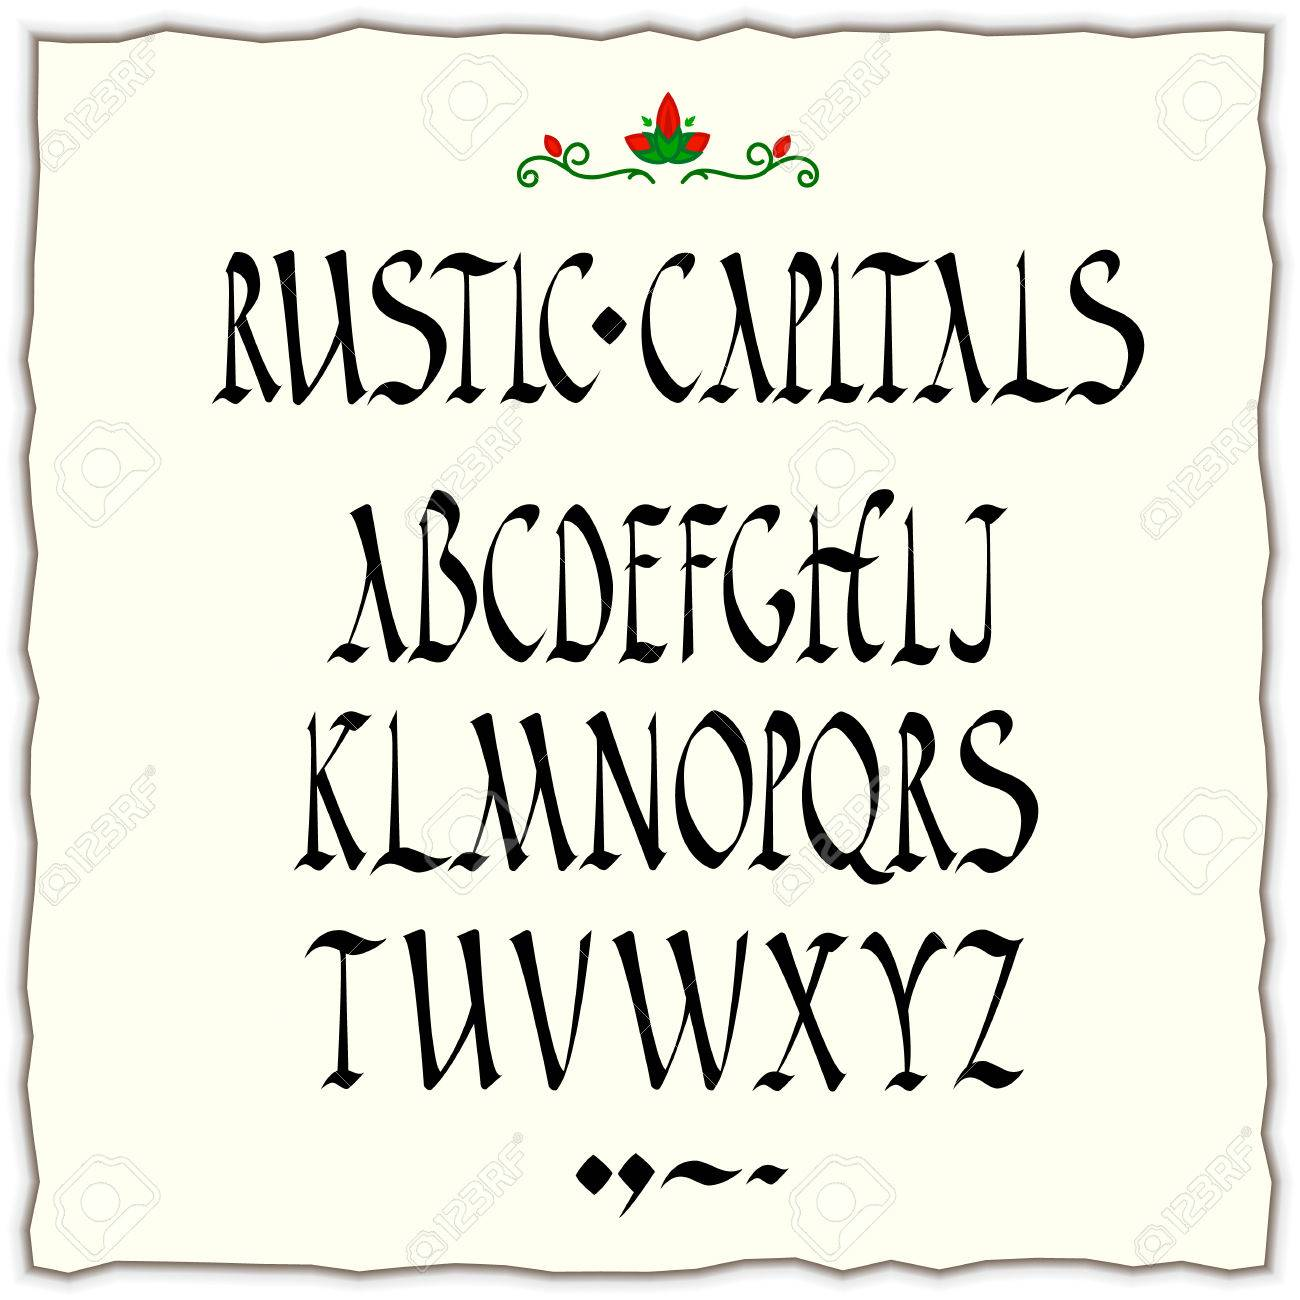 Rustic Capitals Alphabet Square Cut Nib Black Ink Calligraphy Stock Vector